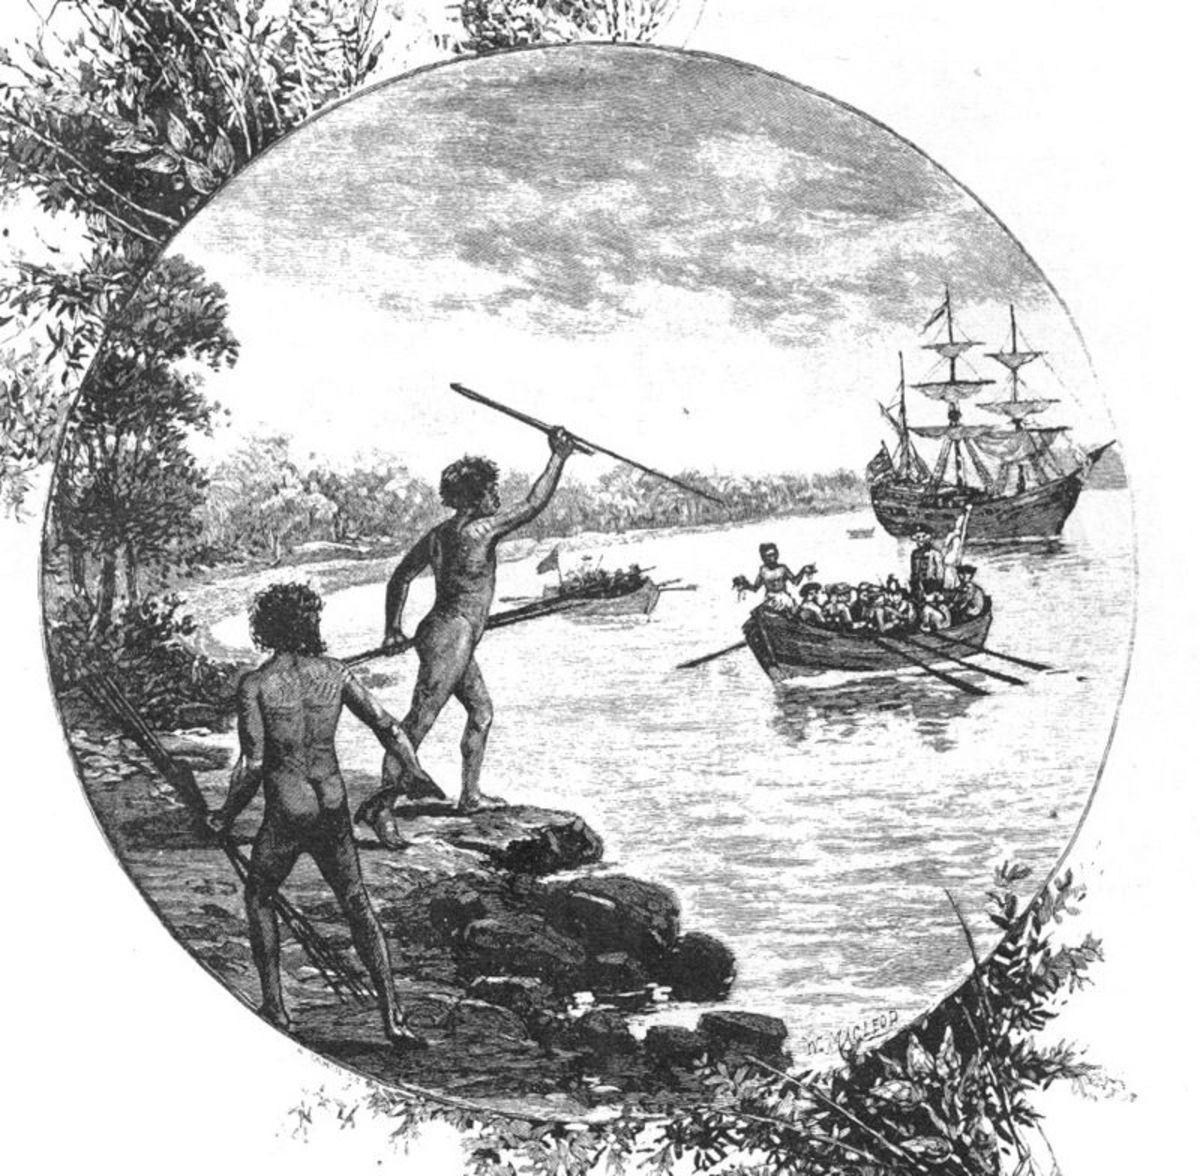 The arrival of Europeans was very bad news for Australia's natives.